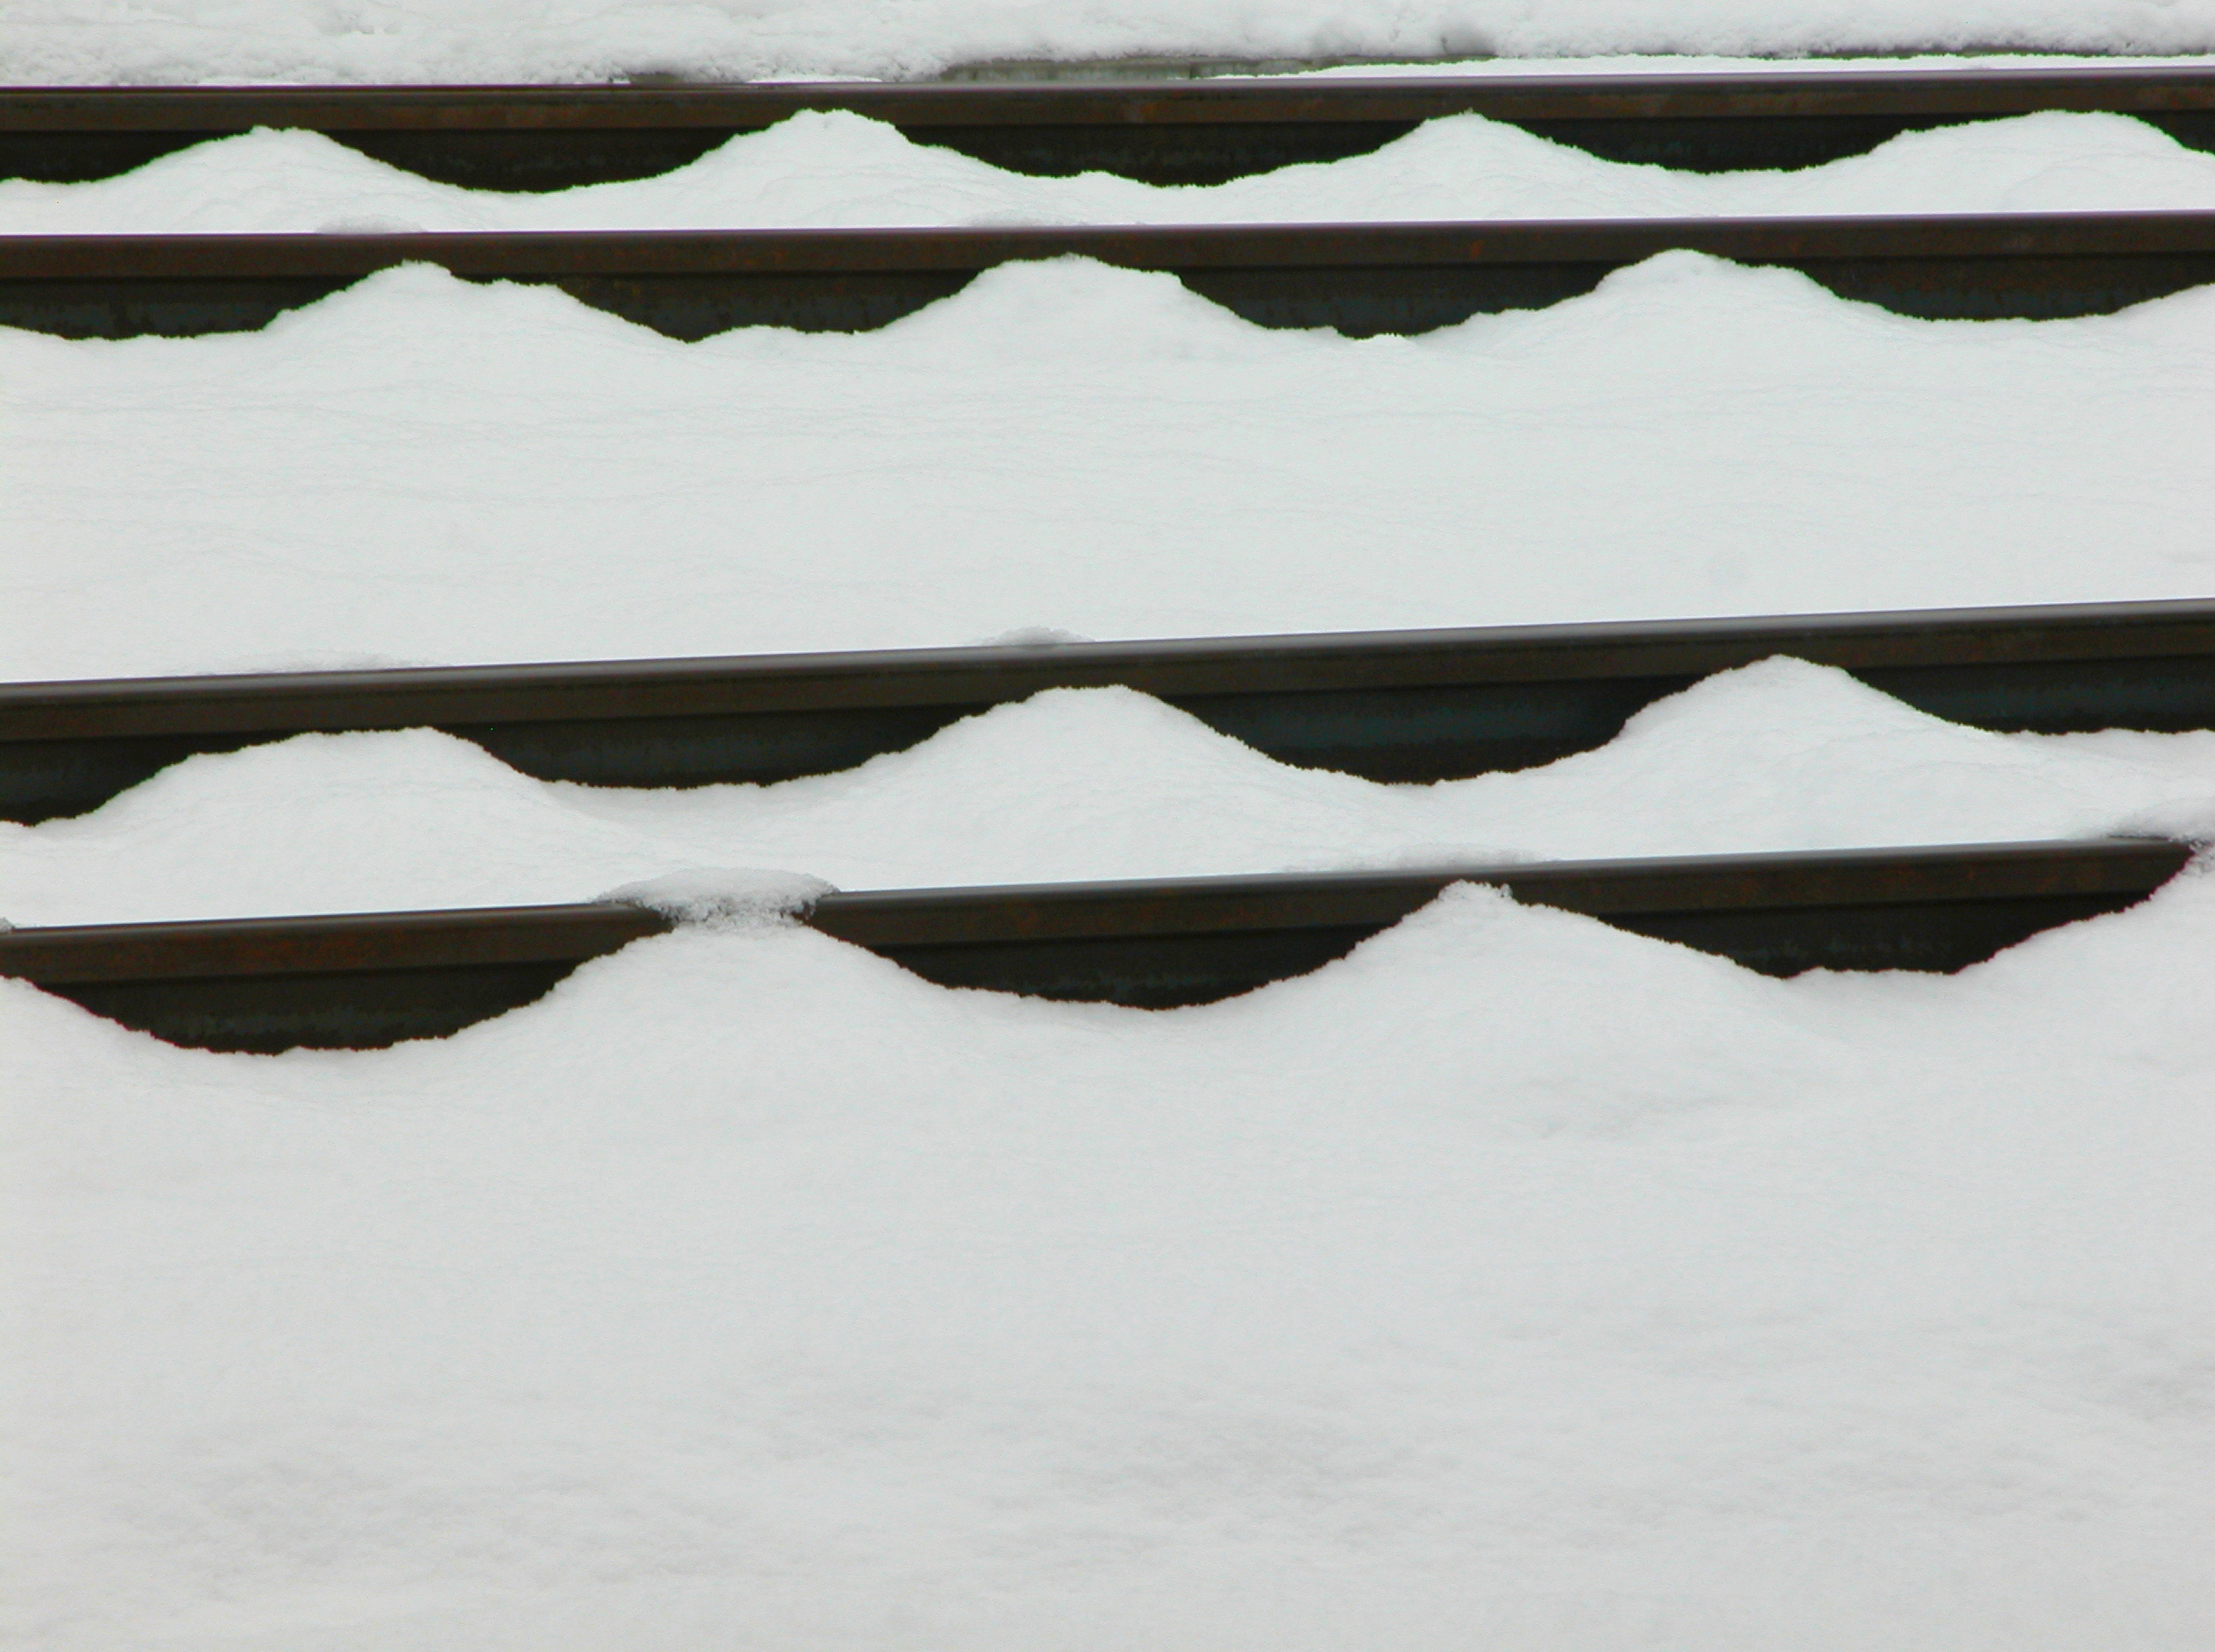 Rail tracks in snow